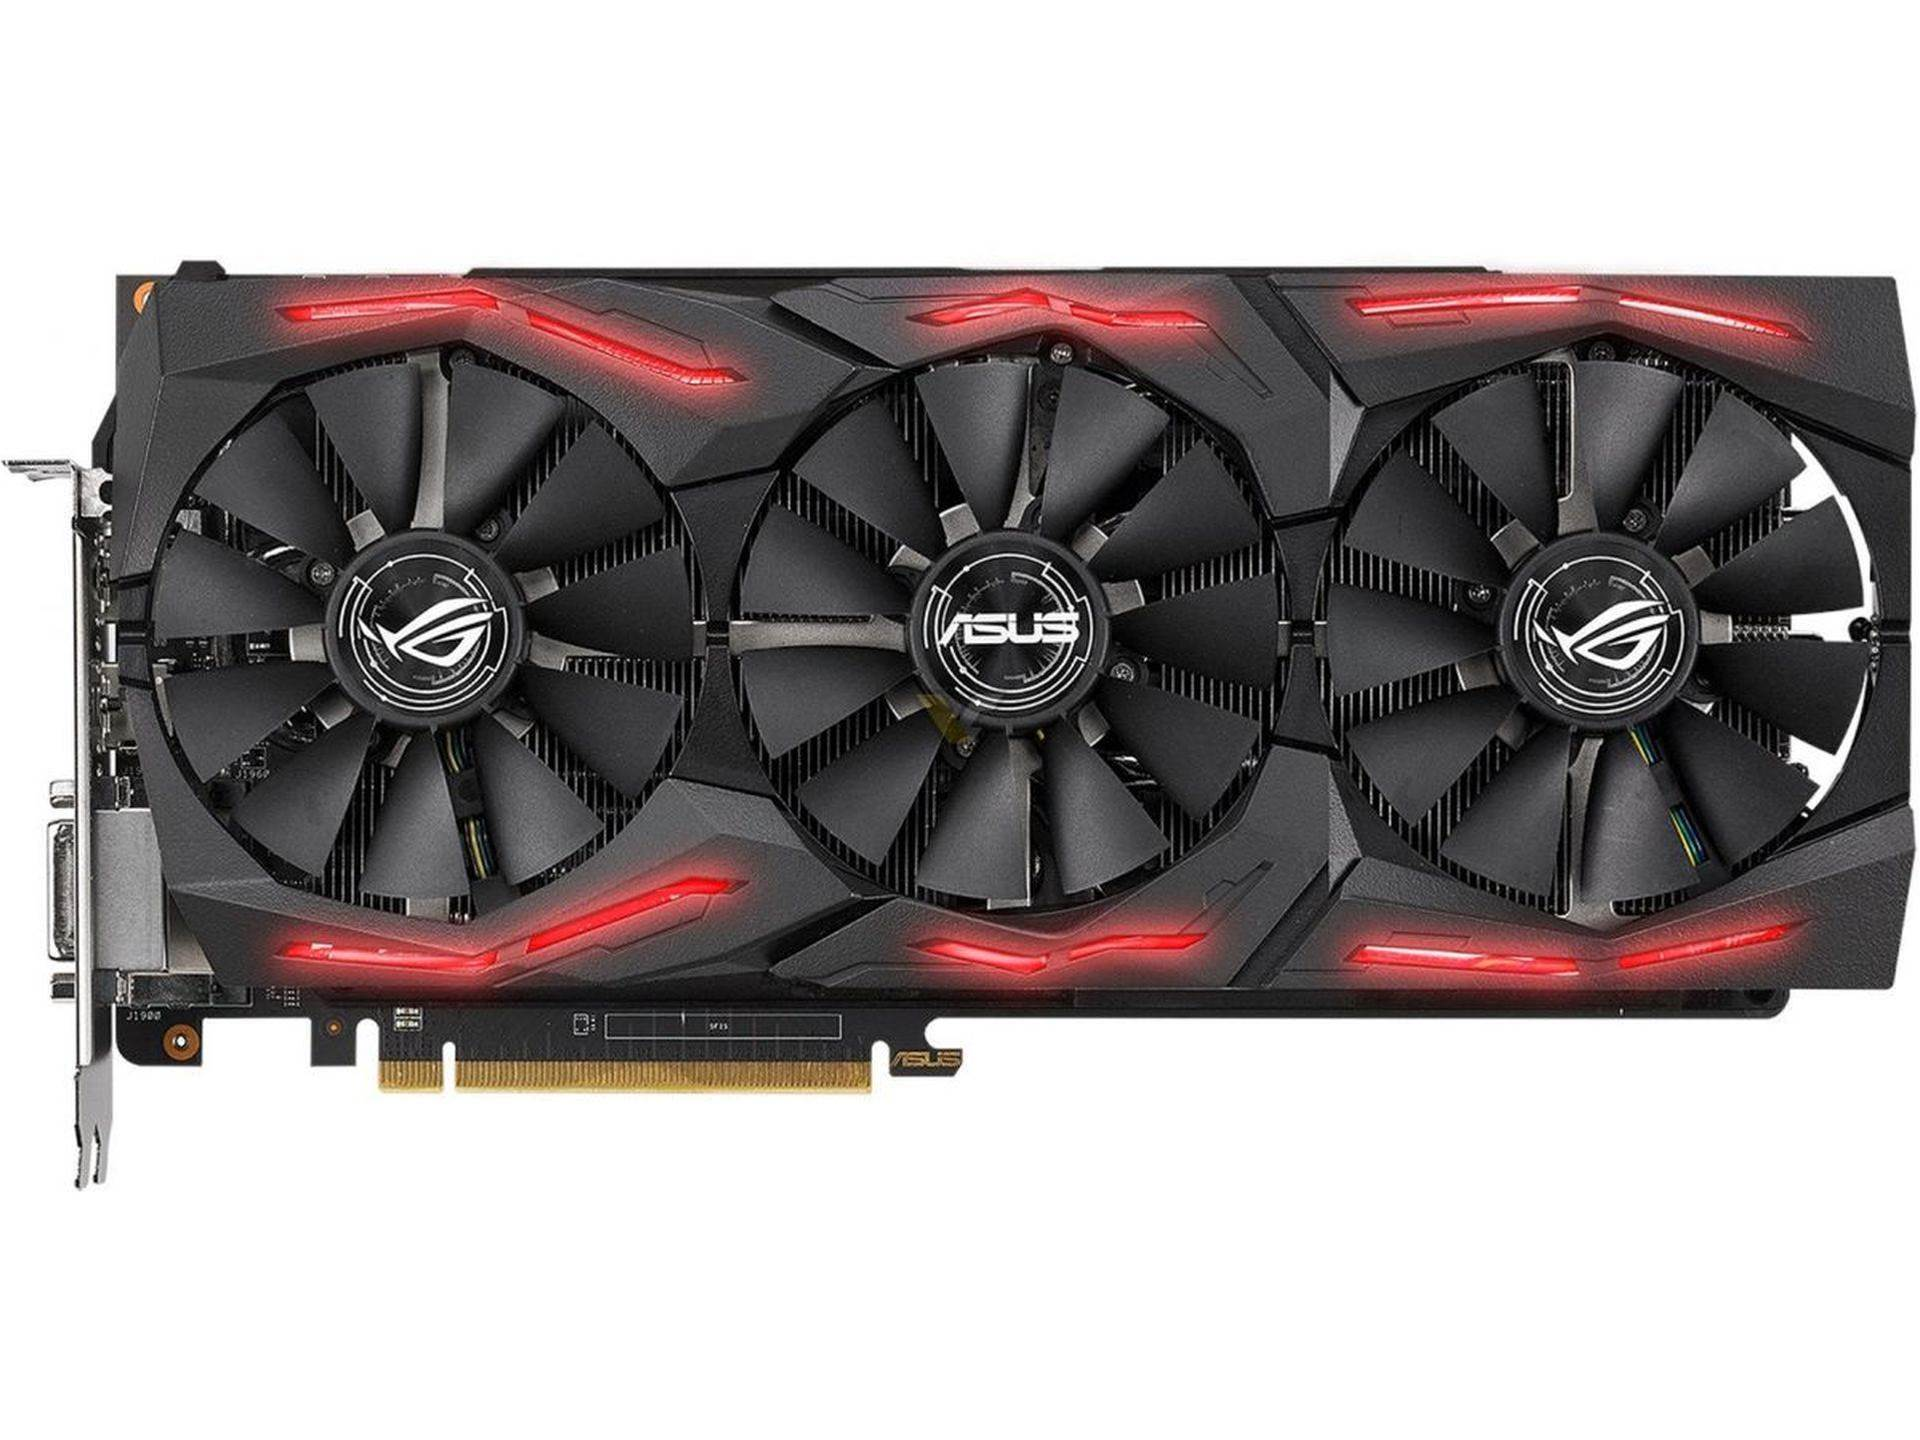 Review: Asus ROG Strix RX Vega 56 video card